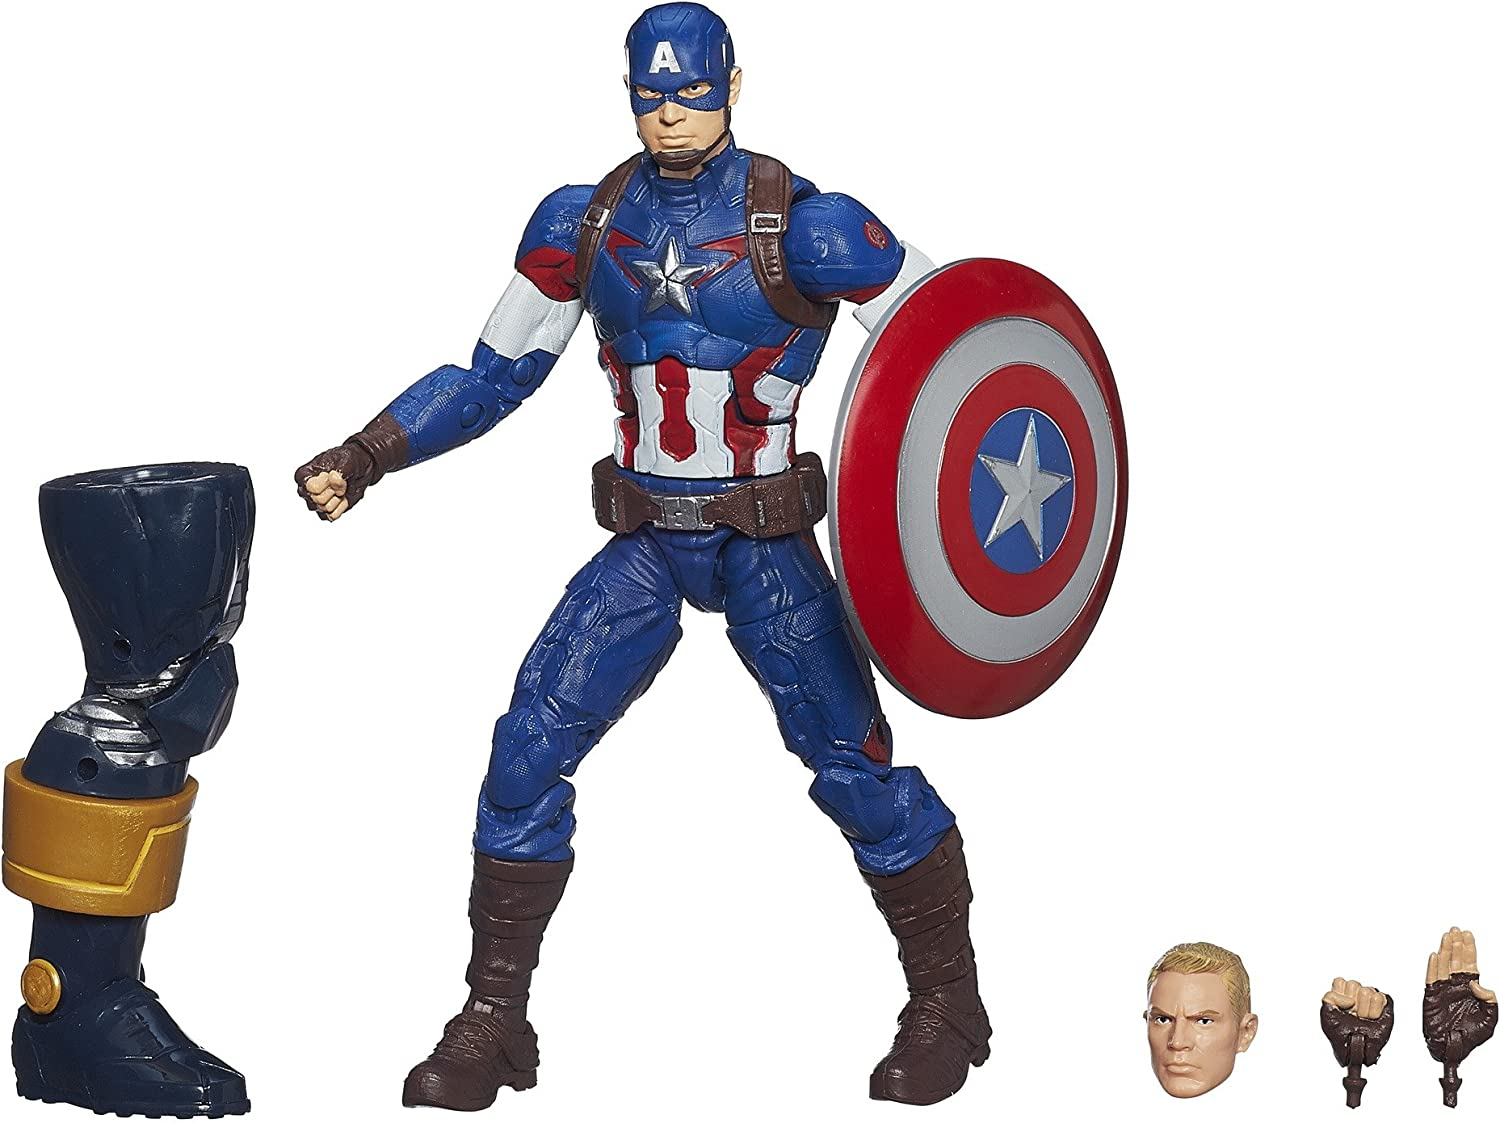 Figurine Captain America Marvel Legends Series Avengers 6 Inch Figure